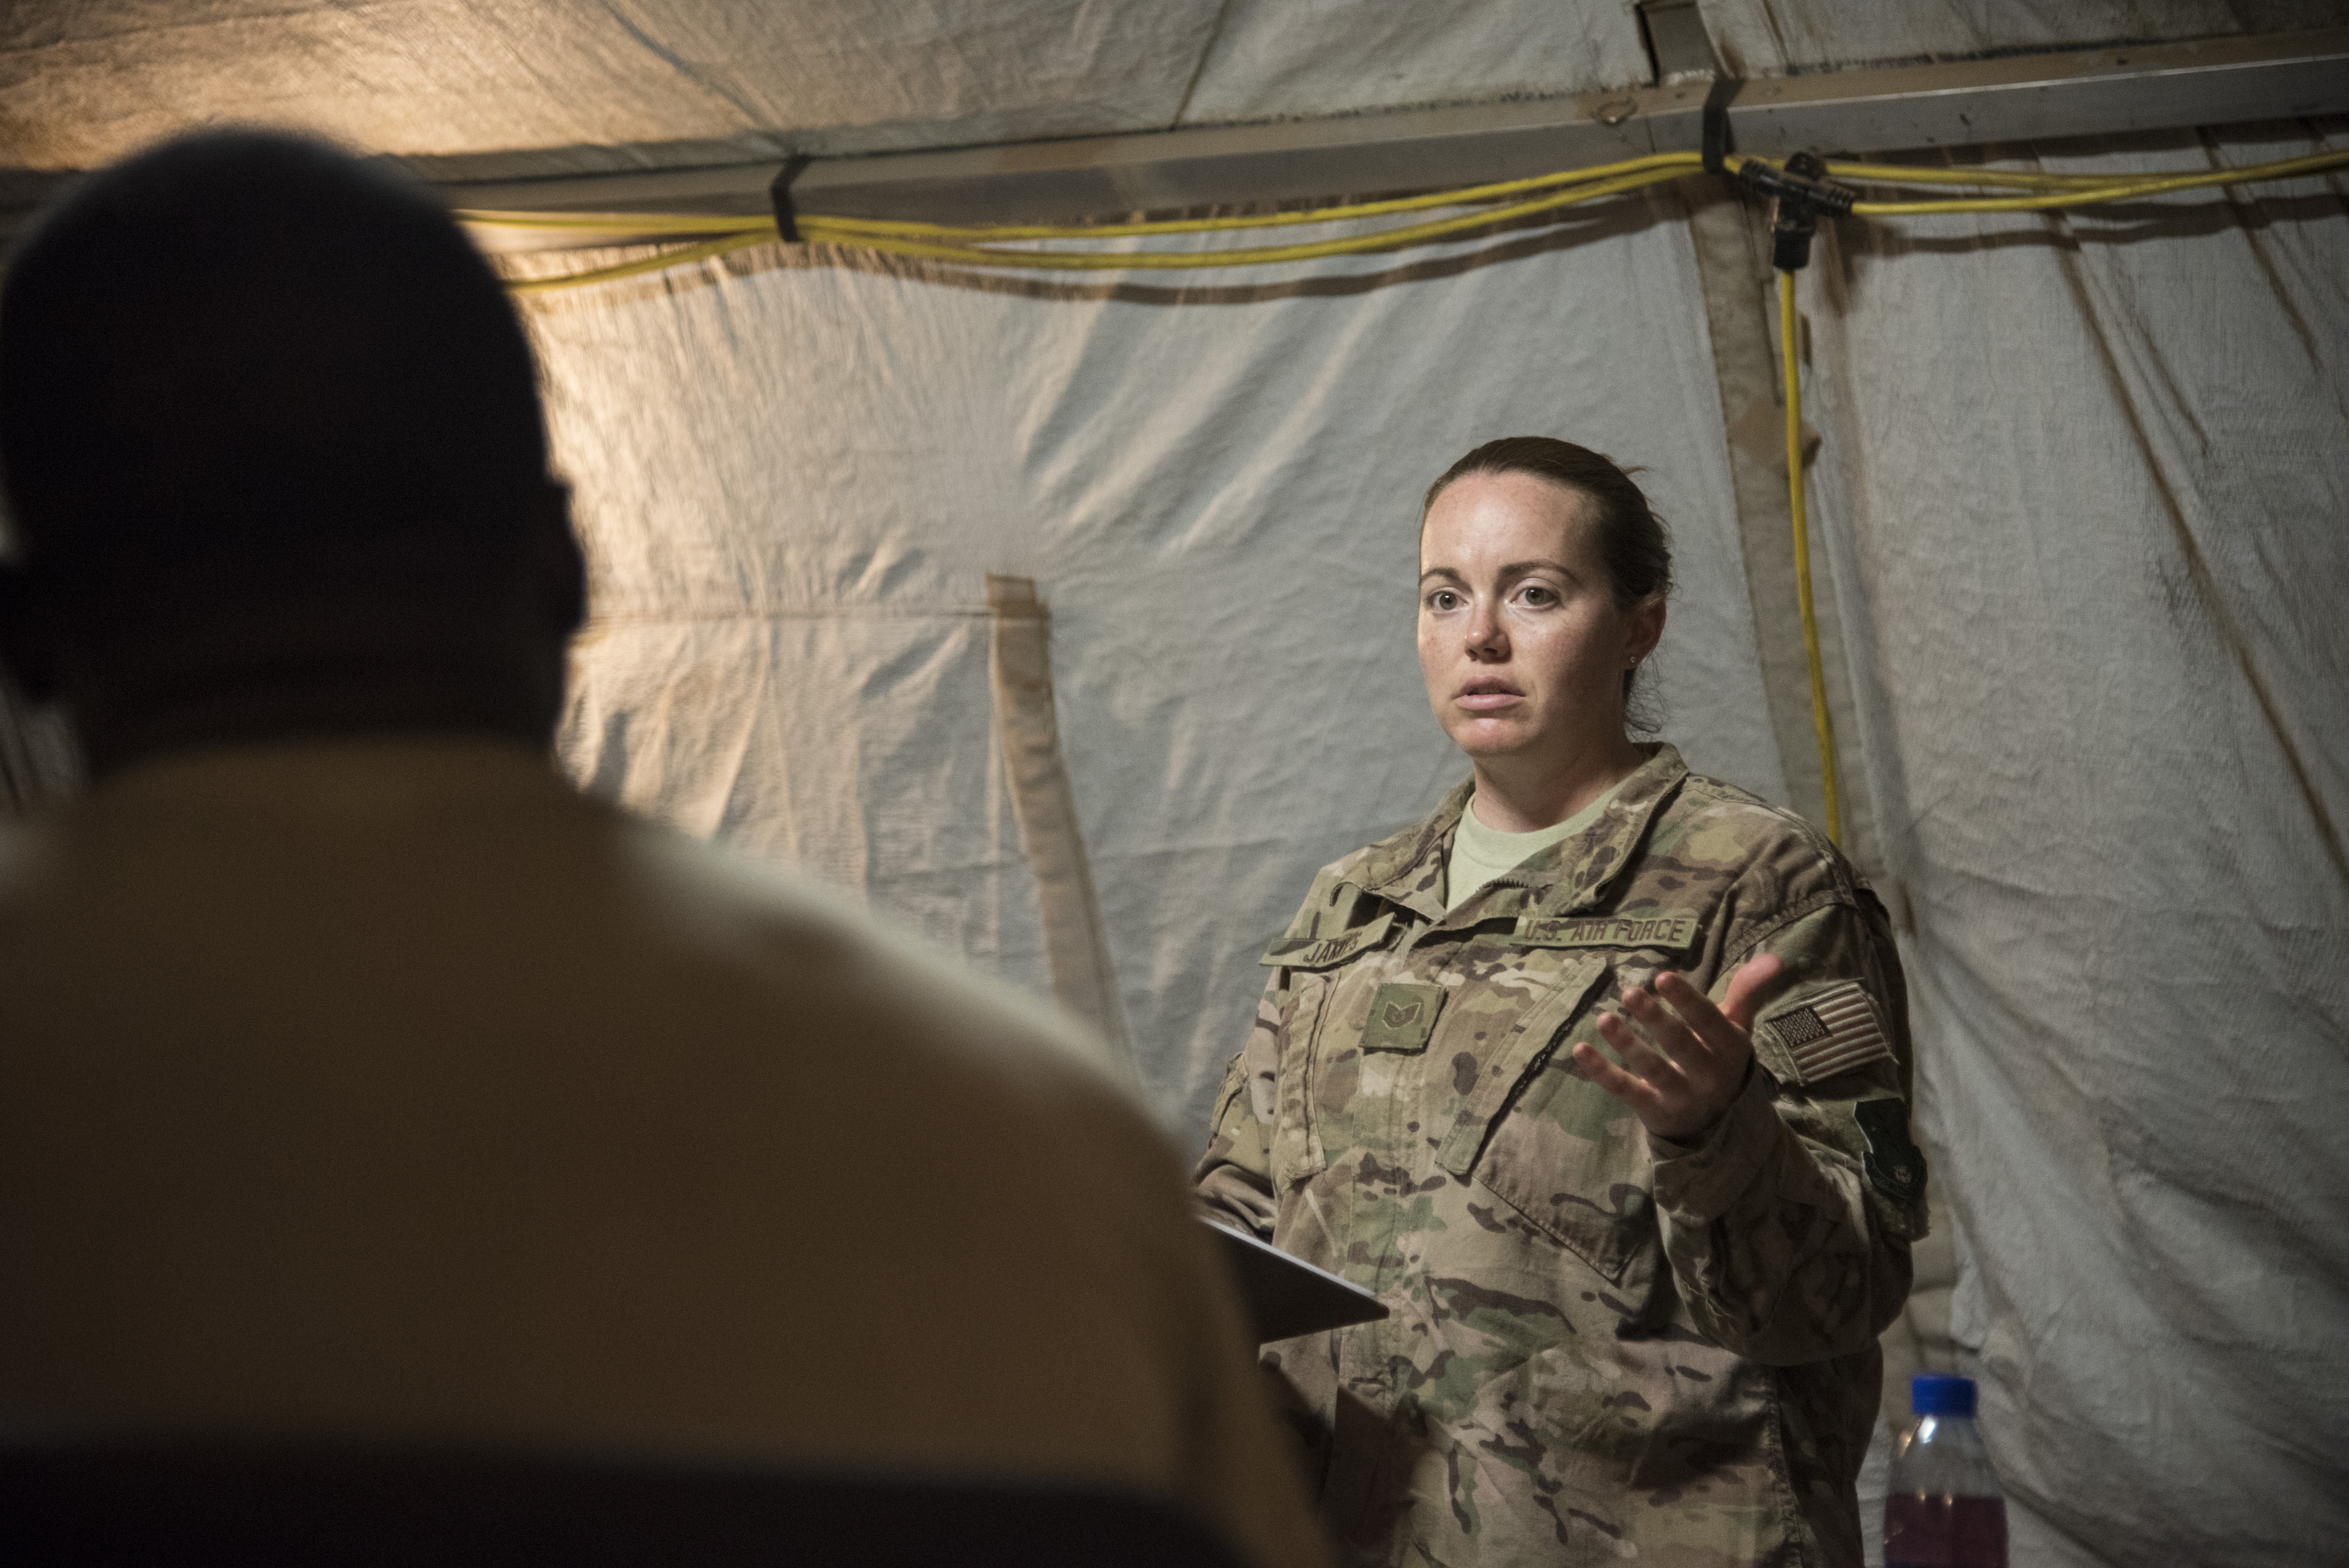 DJIBOUTI- U.S. Air Force Tech. Sgt. Kacy James, 870th Air Expeditionary Squadron Services and Mass Casualty Exercise team lead, briefs her team on the exercise scenario and search and recovery processes during a mass casualty exercise, June 1, 2016. The exercise included mortuary affairs personnel and volunteers from the U.S. Air Force, Navy, Marine Corps and Army, testing their communication, coordination, and skills in search and recovery and mortuary affairs collection point processes. (U.S. Air Force photo by Staff Sgt. Tiffany DeNault)